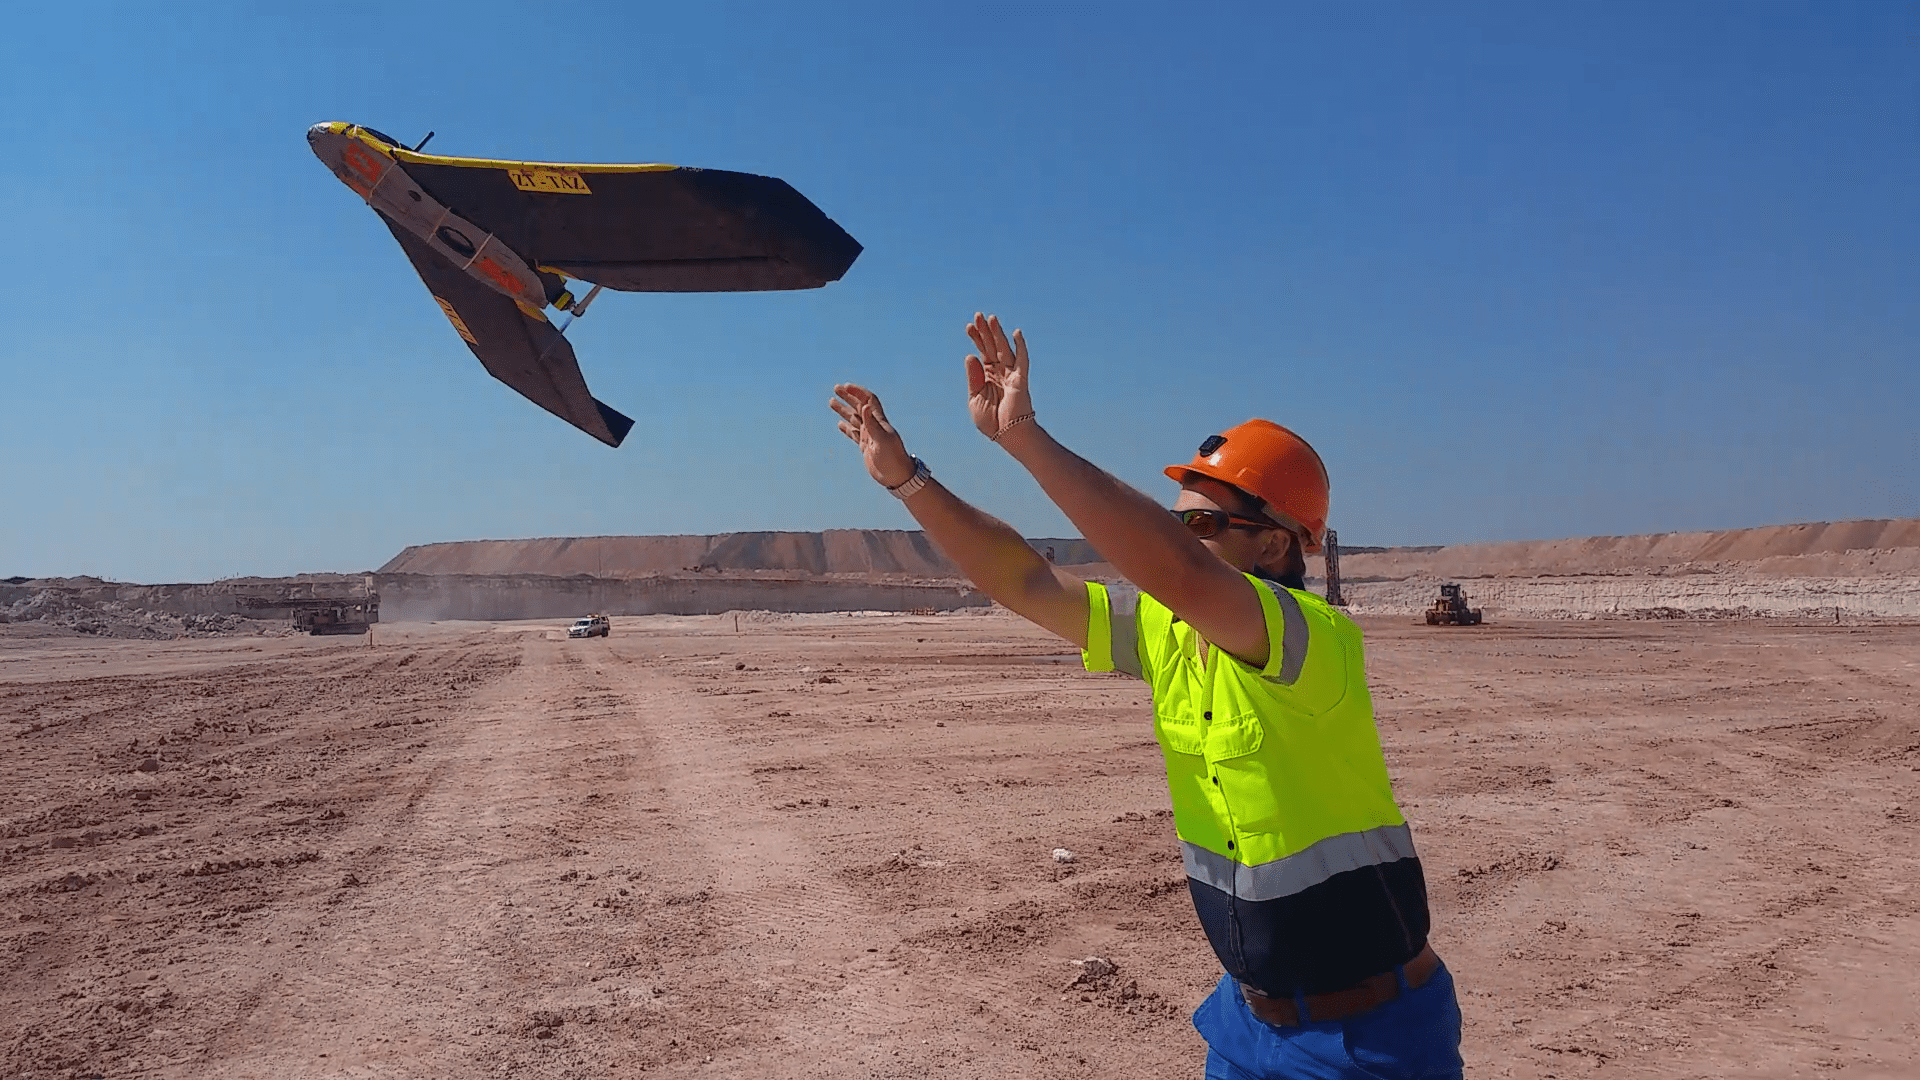 Anglo American's sustainability strategy